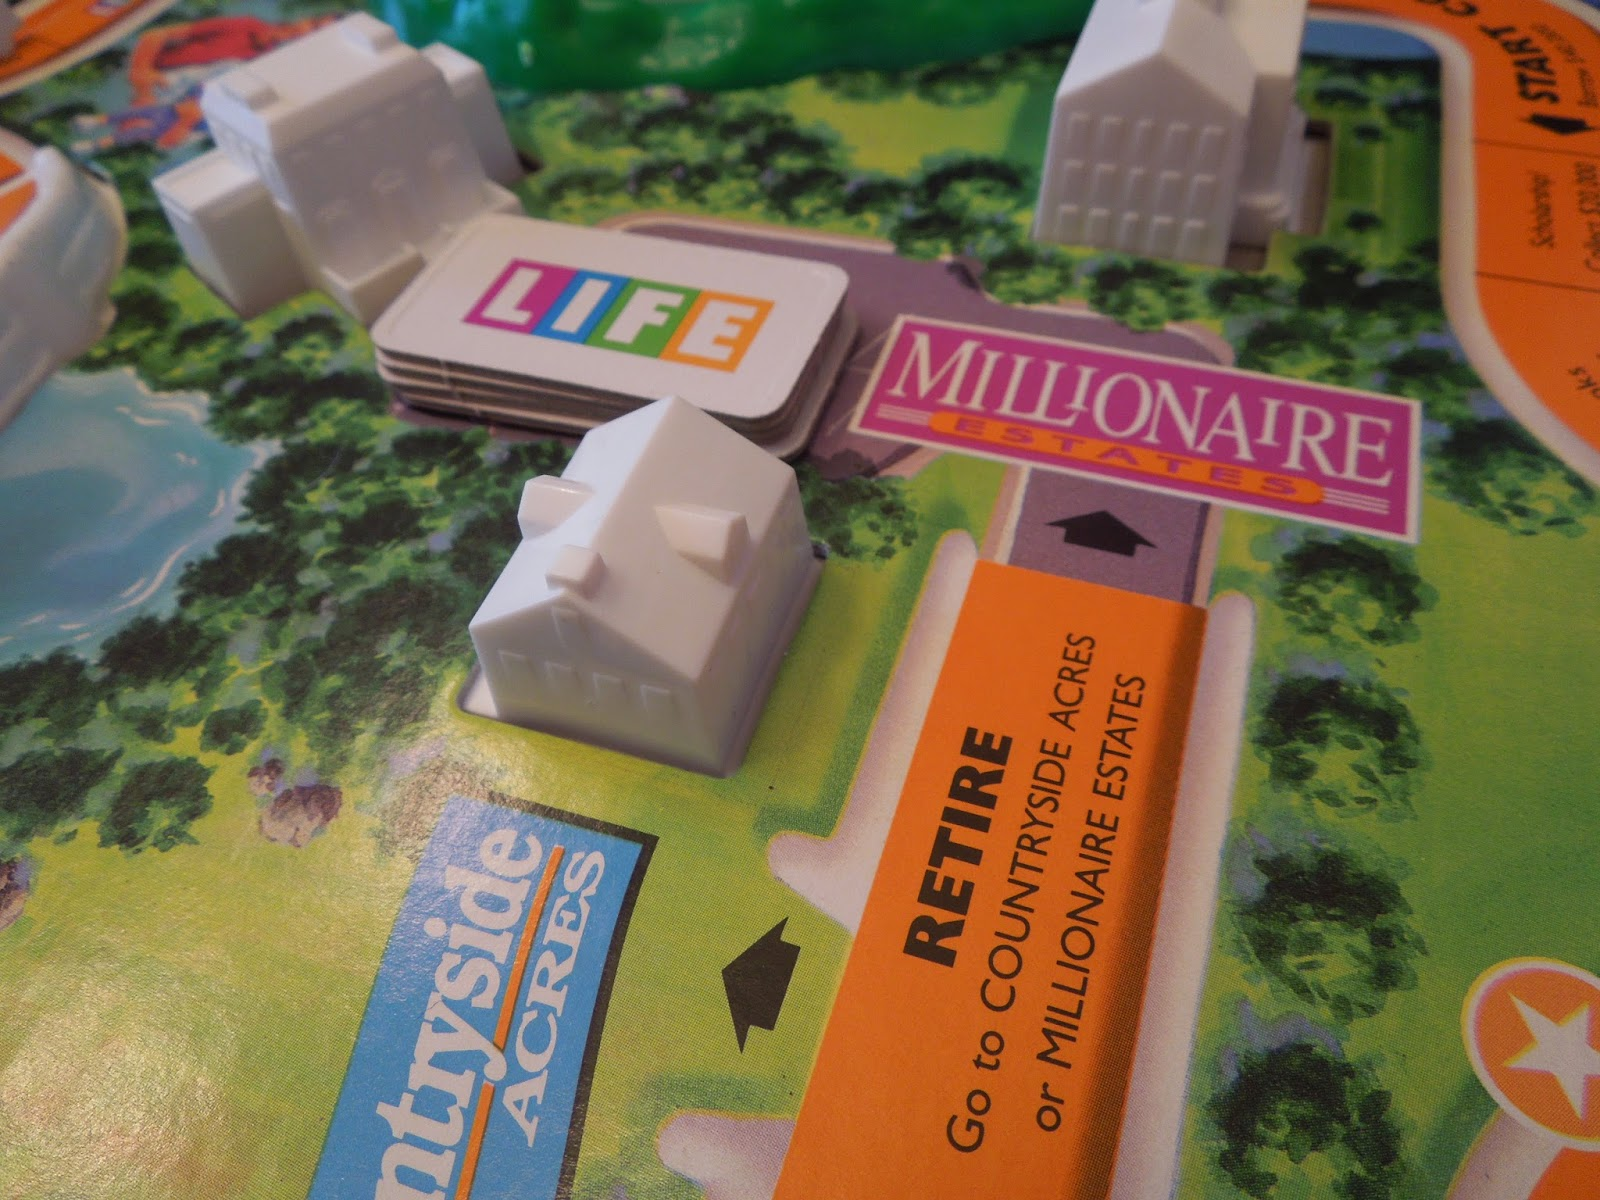 The Game of Life   A Board Game A Day     of the game receives four Life tokens  Players who retire at  Countryside Acres cannot with the extra tokens  but also cannot have their  tokens taken